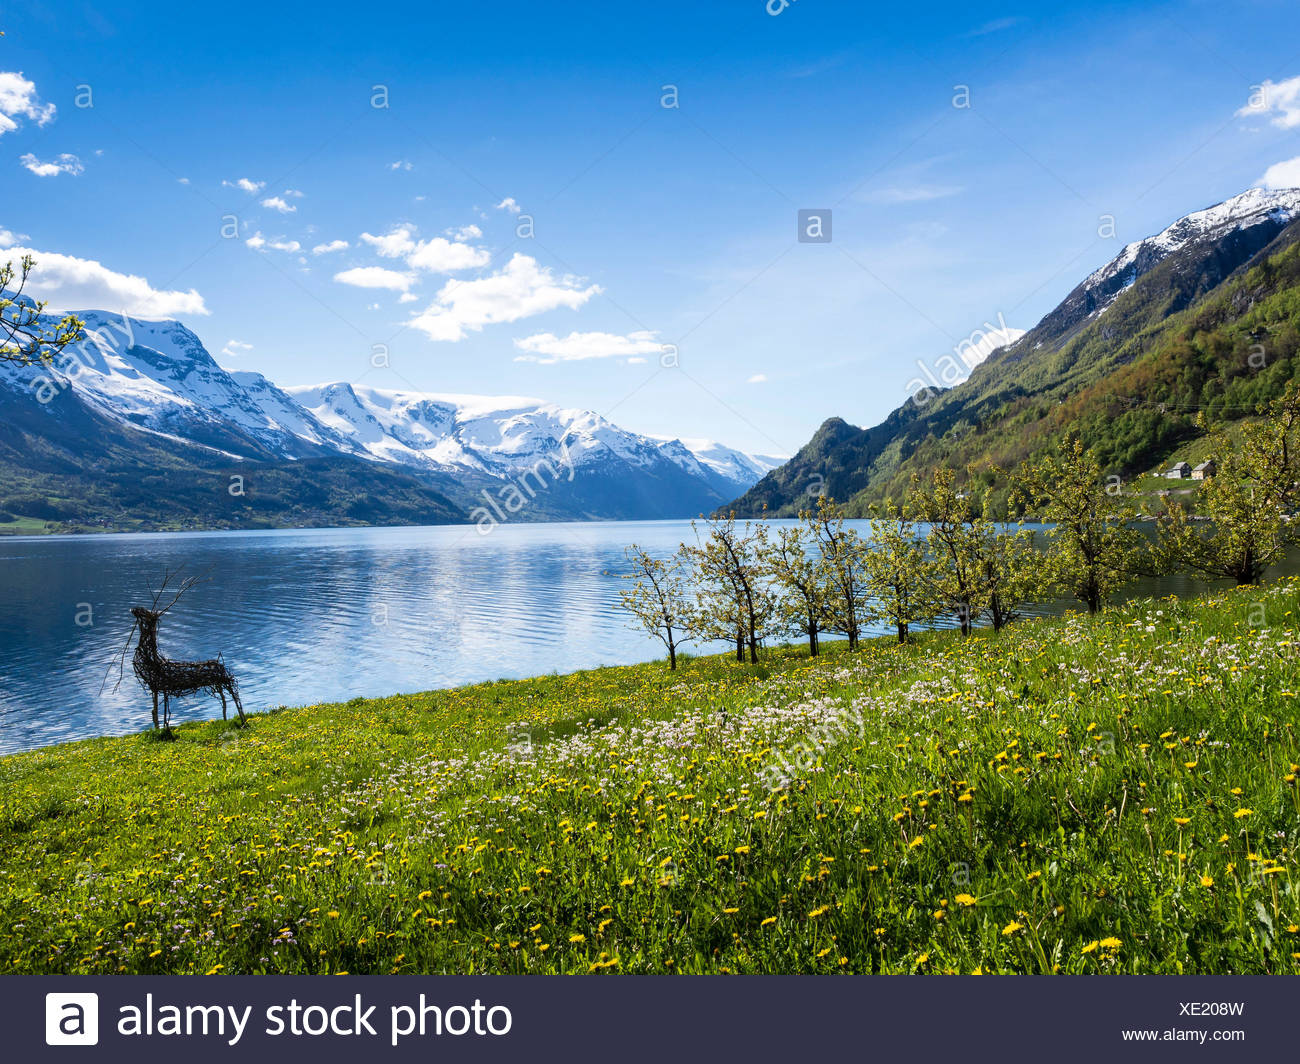 View of snow-covered mountains, fjord and apple trees in bloom, spring, Hardangerfjord near Lofthus, Hardanger,  Norway, Scandinavia, Europe - Stock Image